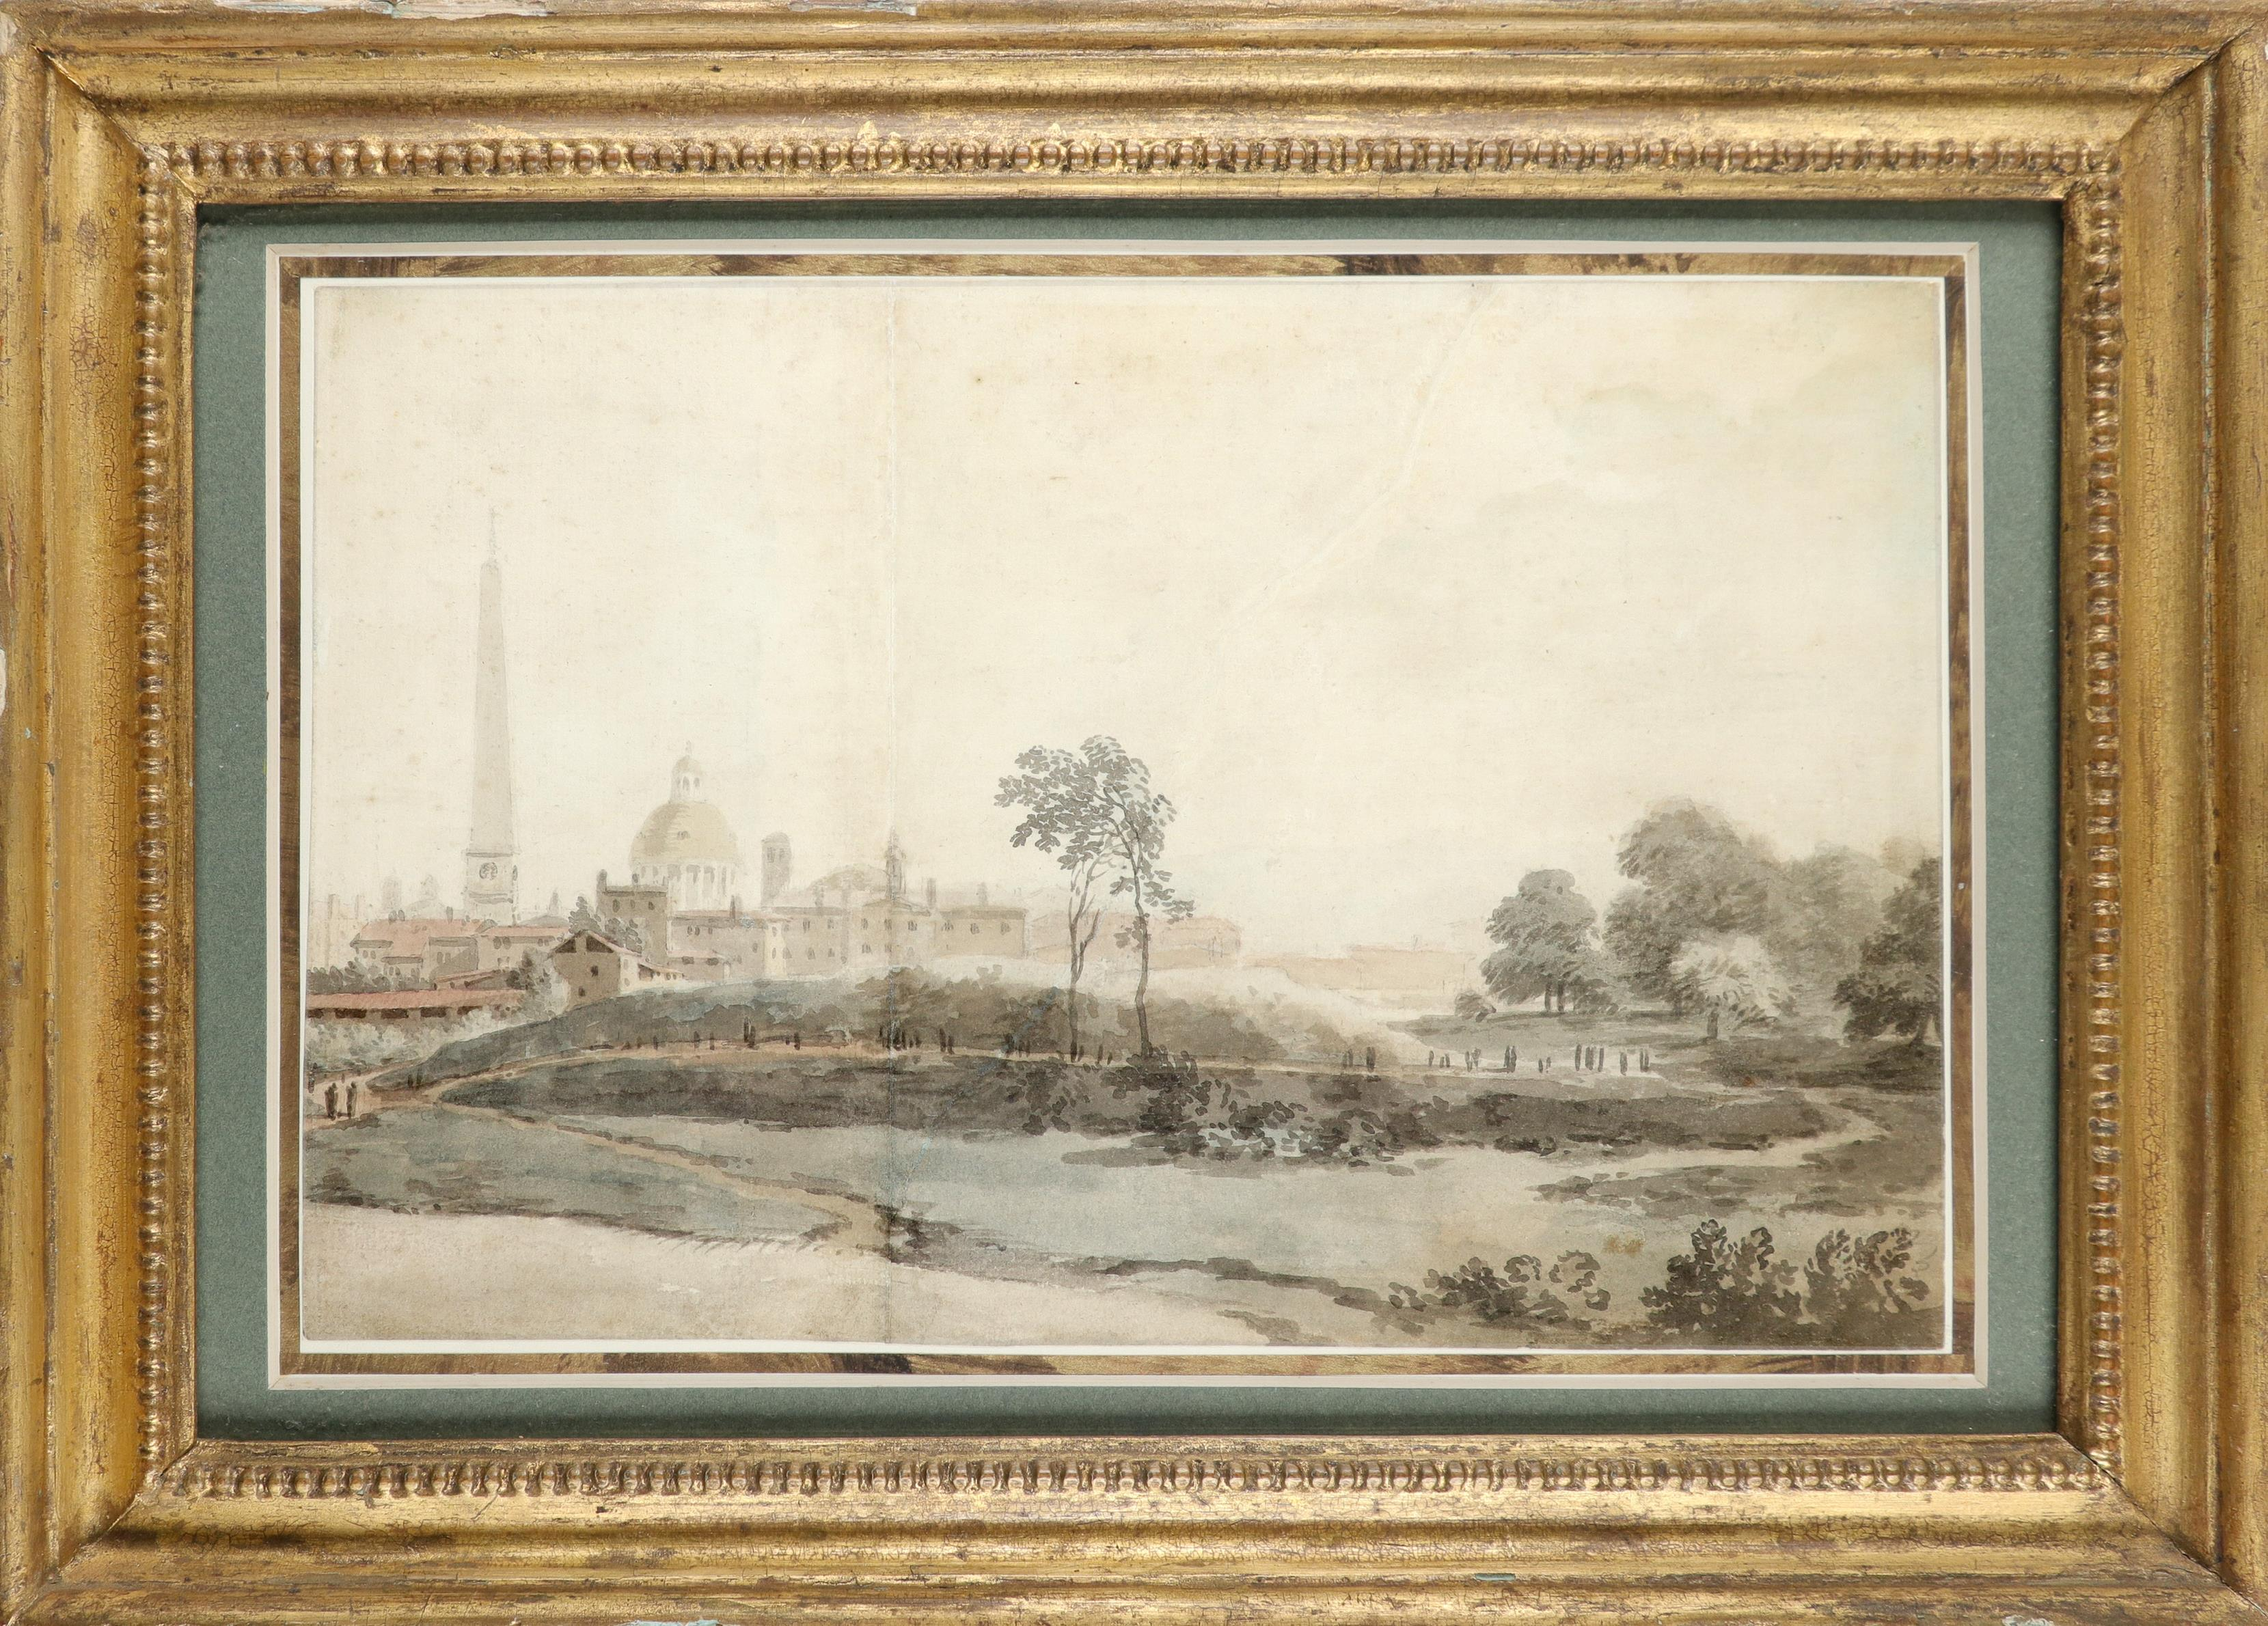 Attributed to William Taverner (1703-1772) A view of Rome with St. Peter's from outside the walls - Image 2 of 3